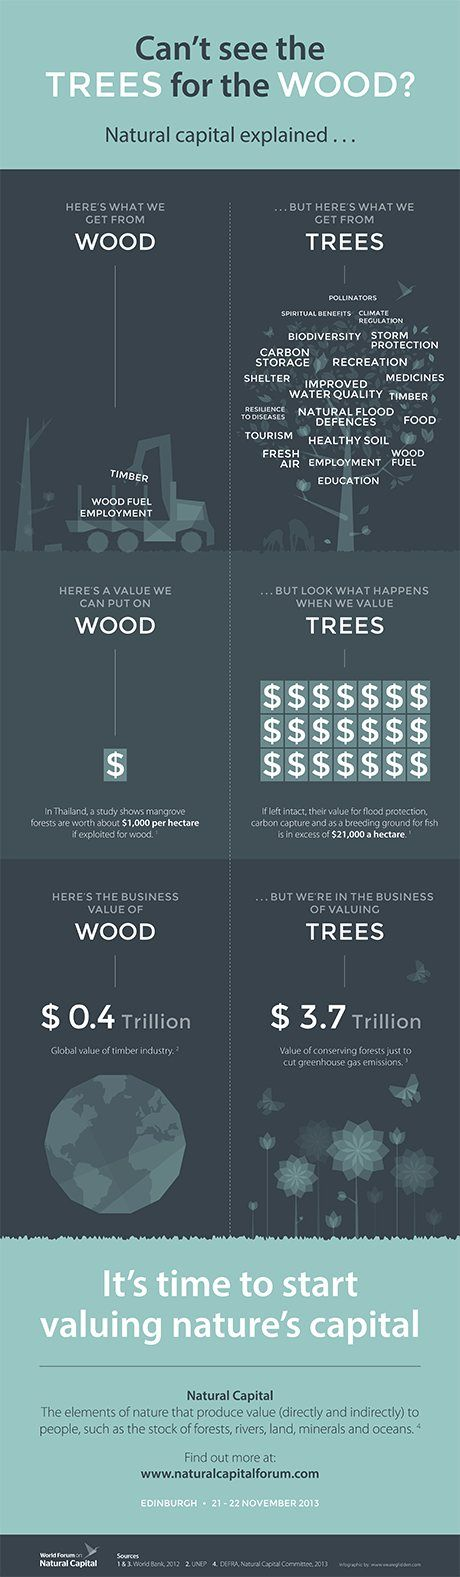 What is natural capital? Valuing nature may be complex but it could prove vital for the future. This infographic illustrates the economic benefits of wood compared to those that are gained from trees.